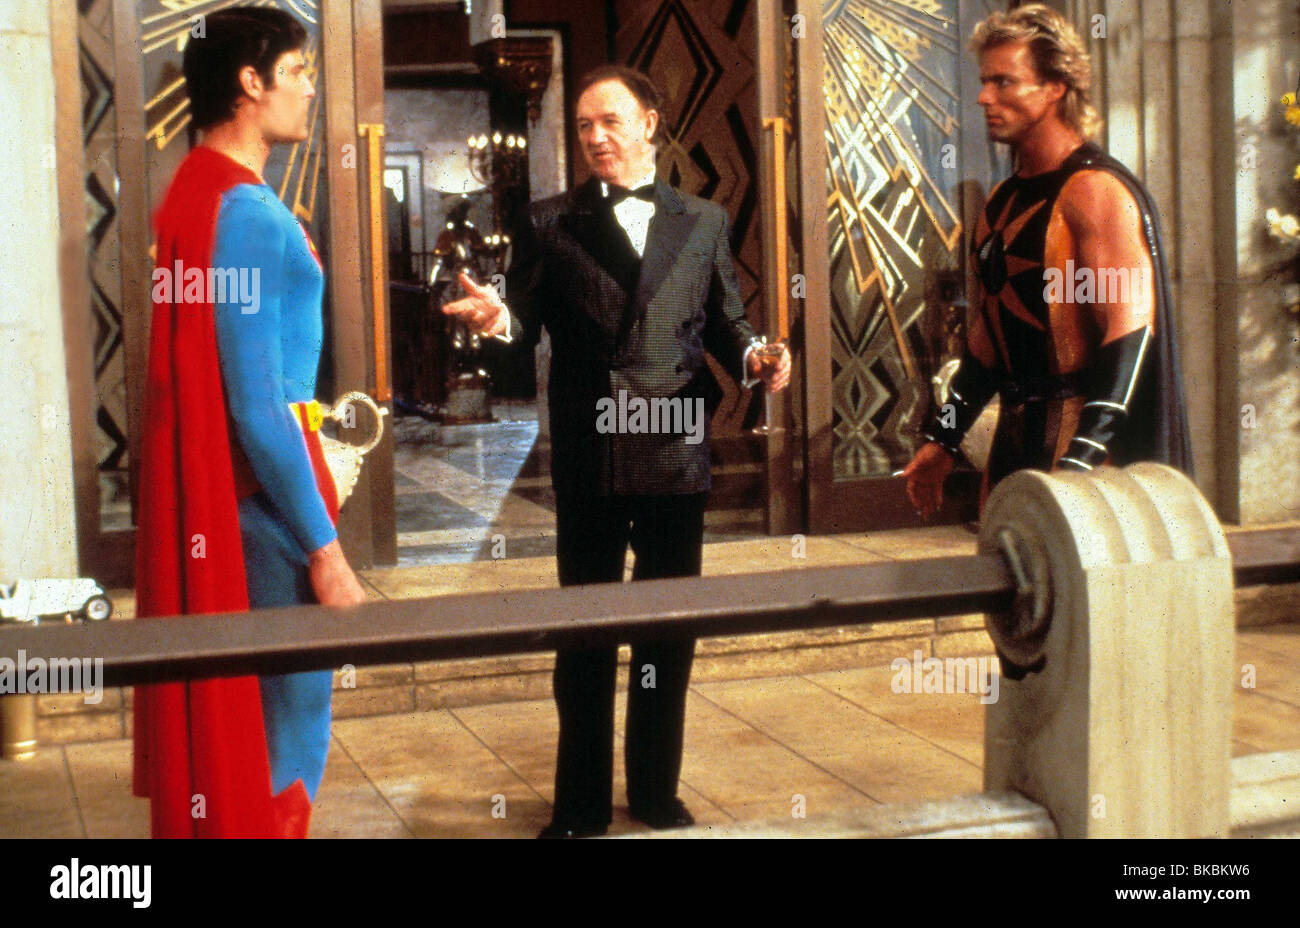 SUPERMAN IV (1987) CHRISTOPHER REEVE, GENE HACKMAN, MARK PILLOW SP4 008 L - Stock Image